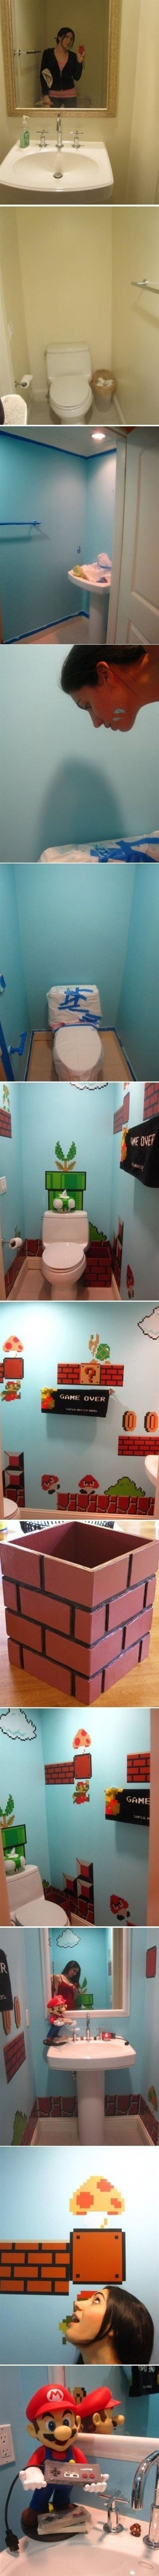 Turn your bathroom from plain to an adventure straight out of the Mushroom Kingdom.